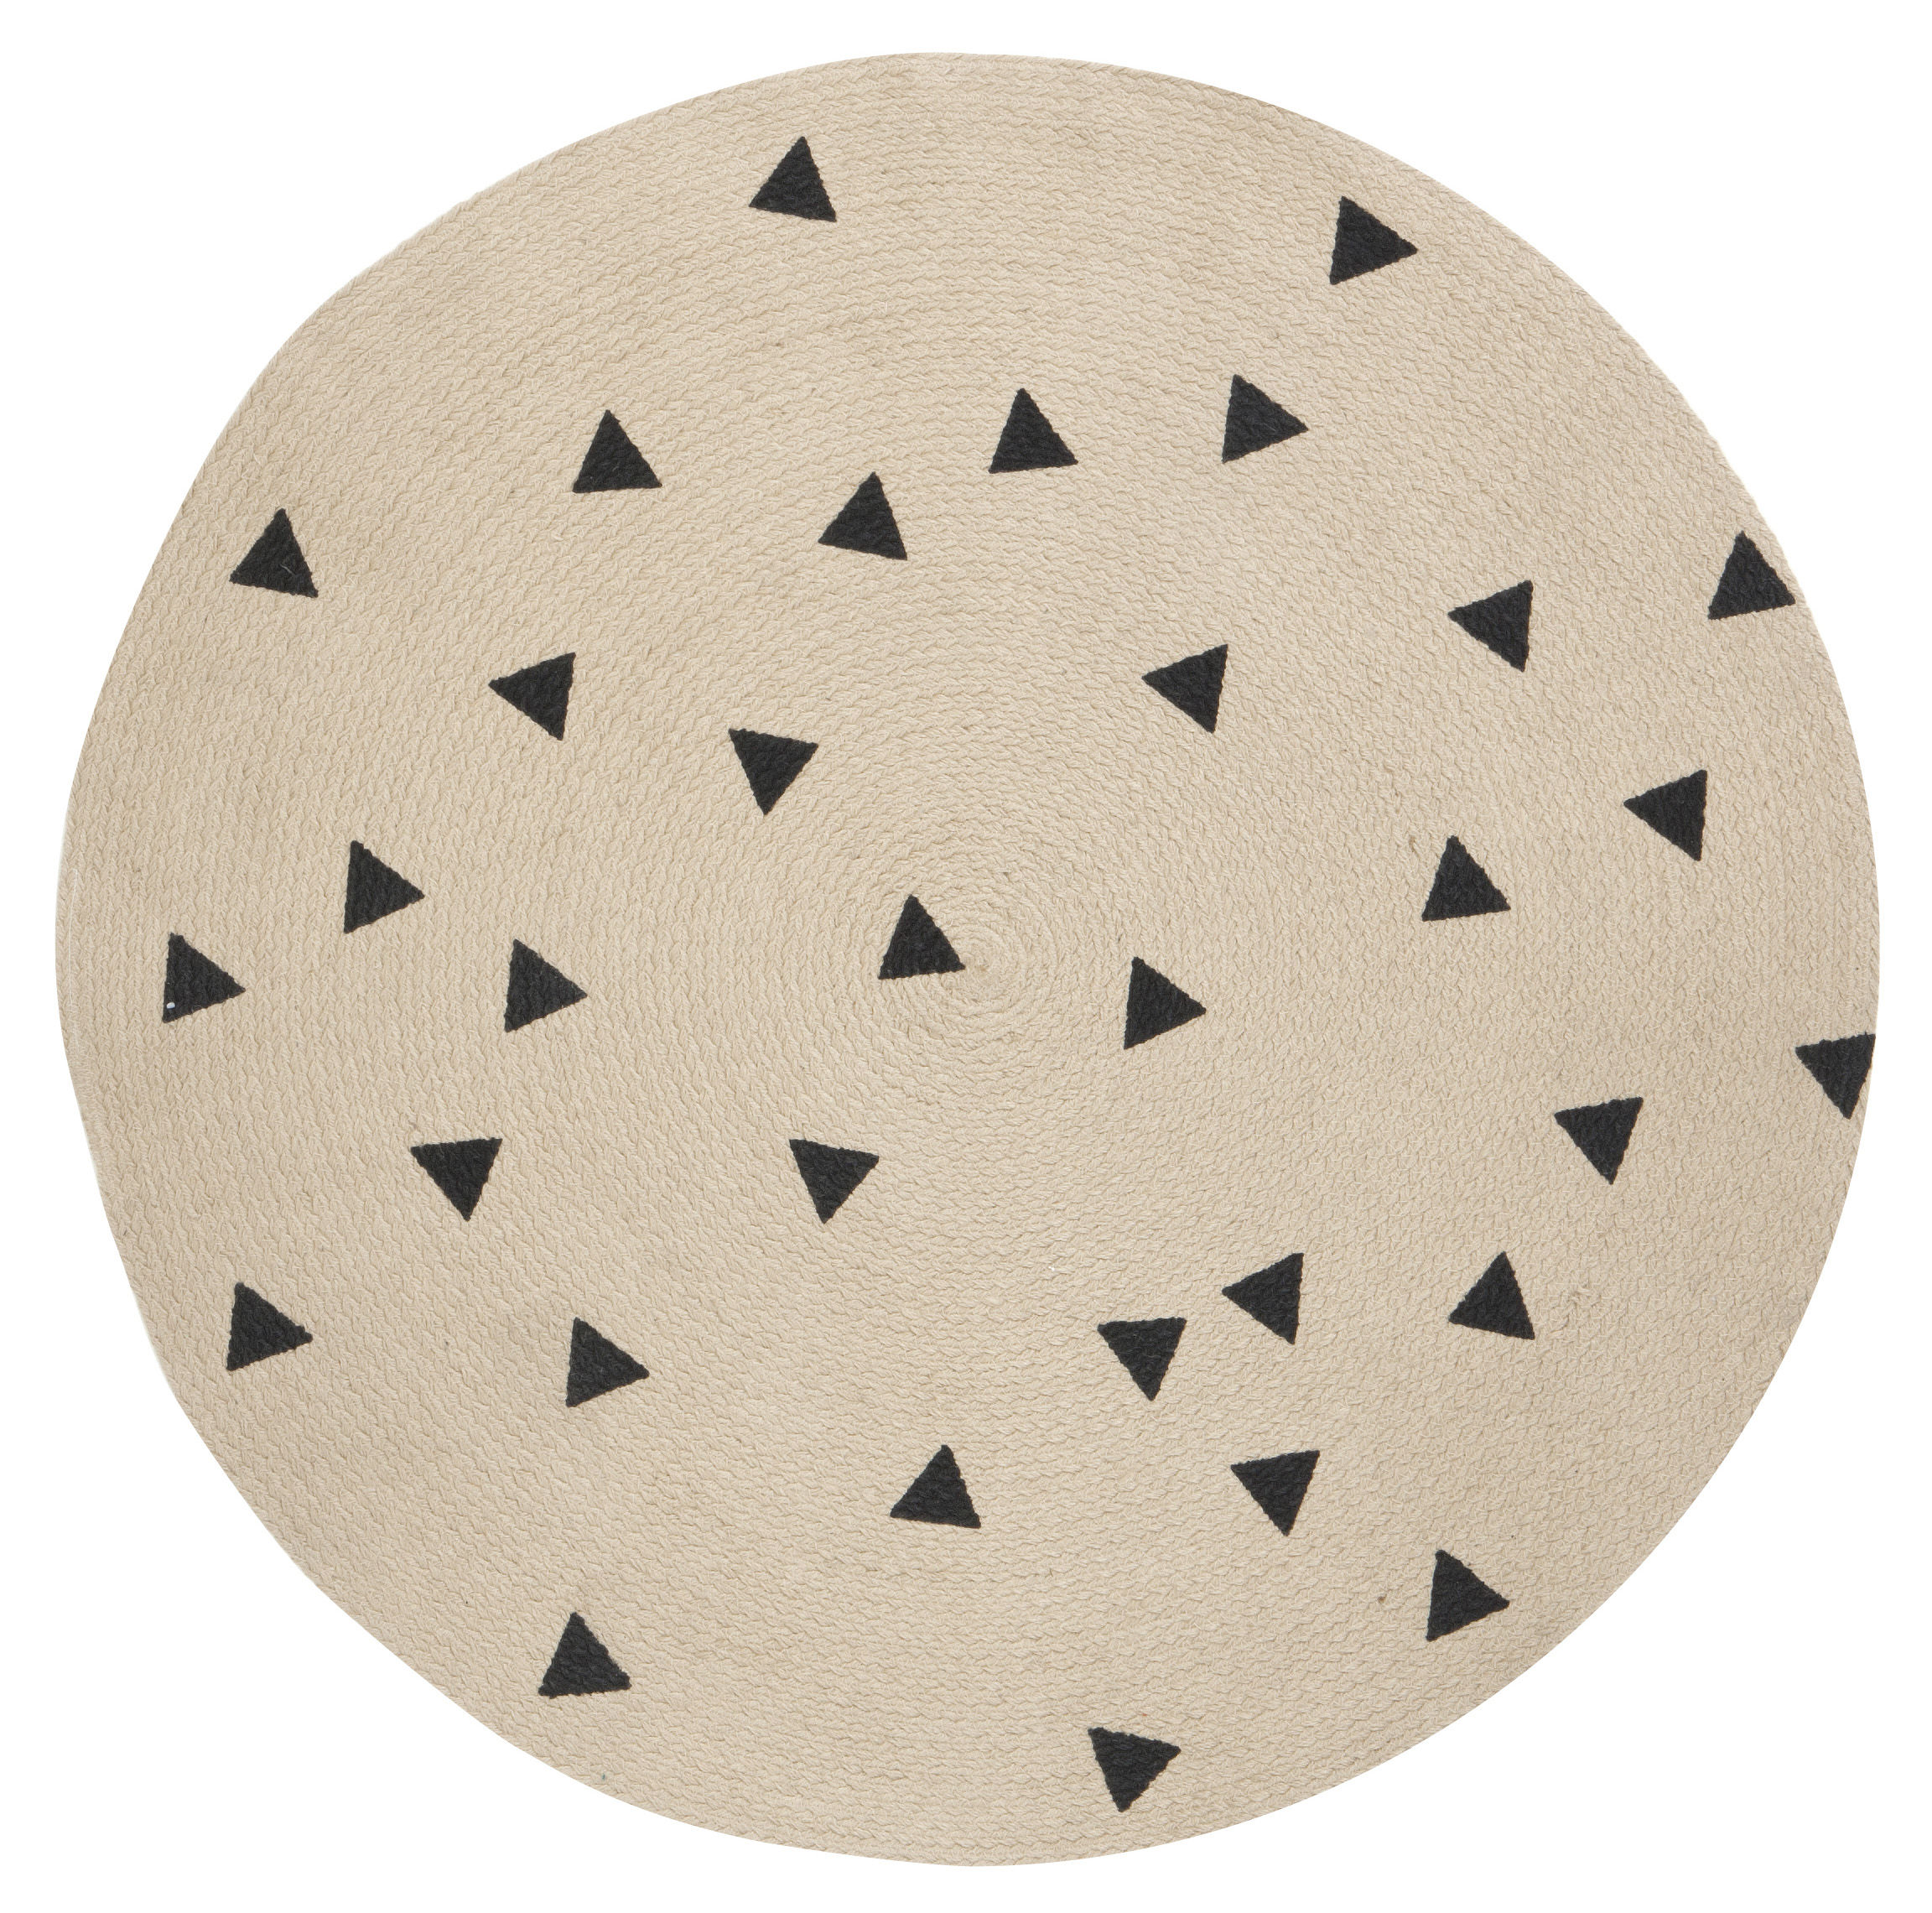 Déco - Tapis - Tapis Triangles / Ø 100 cm - Ferm Living - Noir / Triangles - Jute